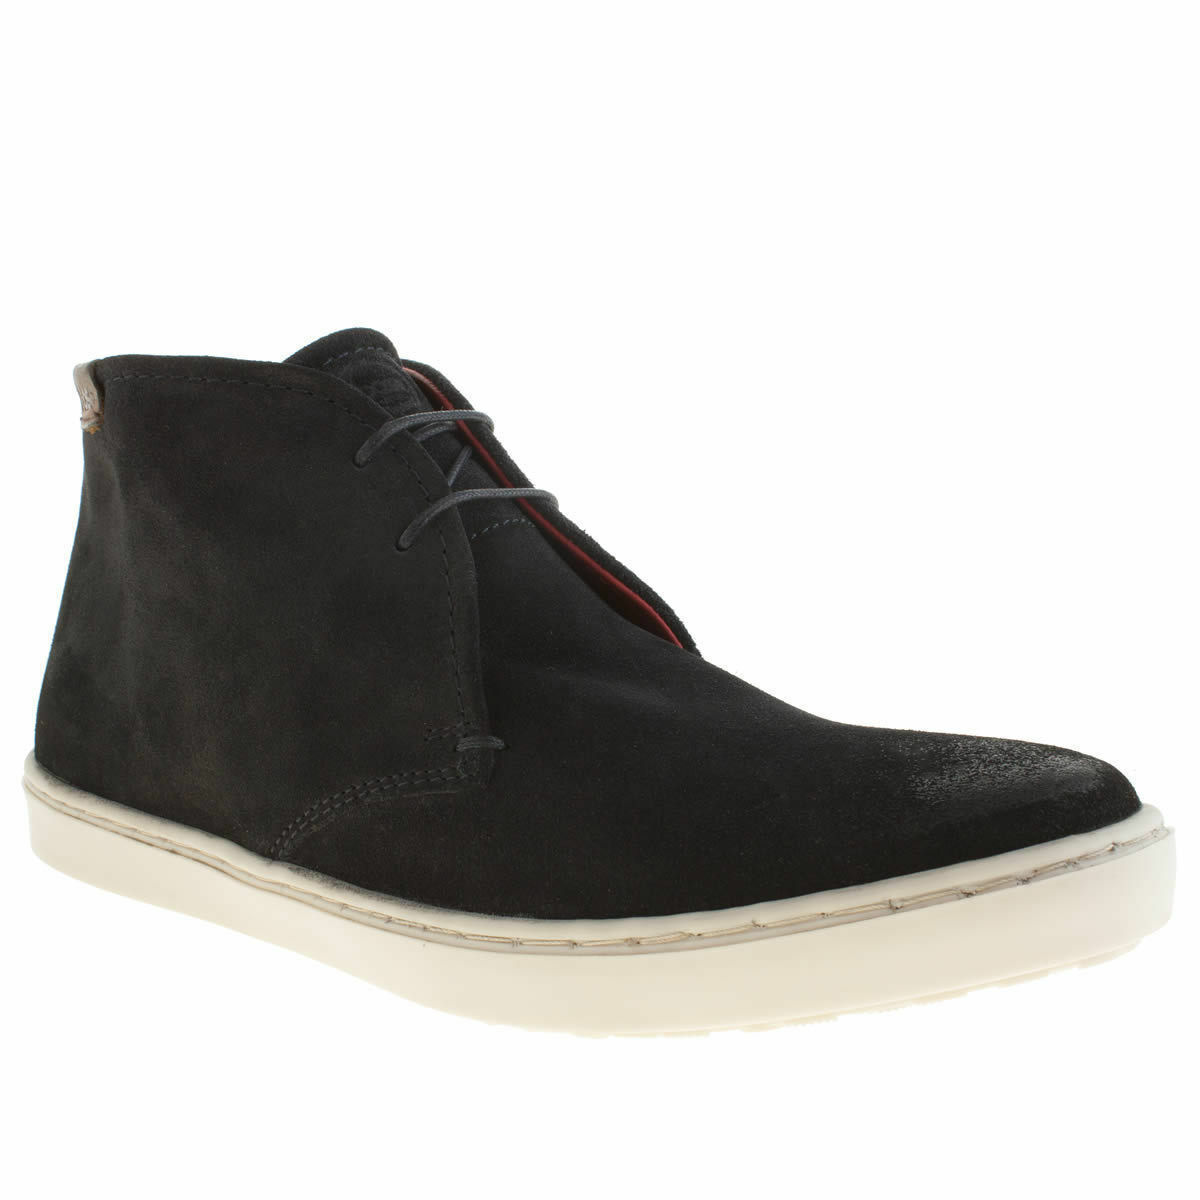 BASE LONDON NATIONAL SUEDE MID  Herren NAVY SUEDE NATIONAL CASUAL LACE UPS Stiefel SIZE 12 274bc3